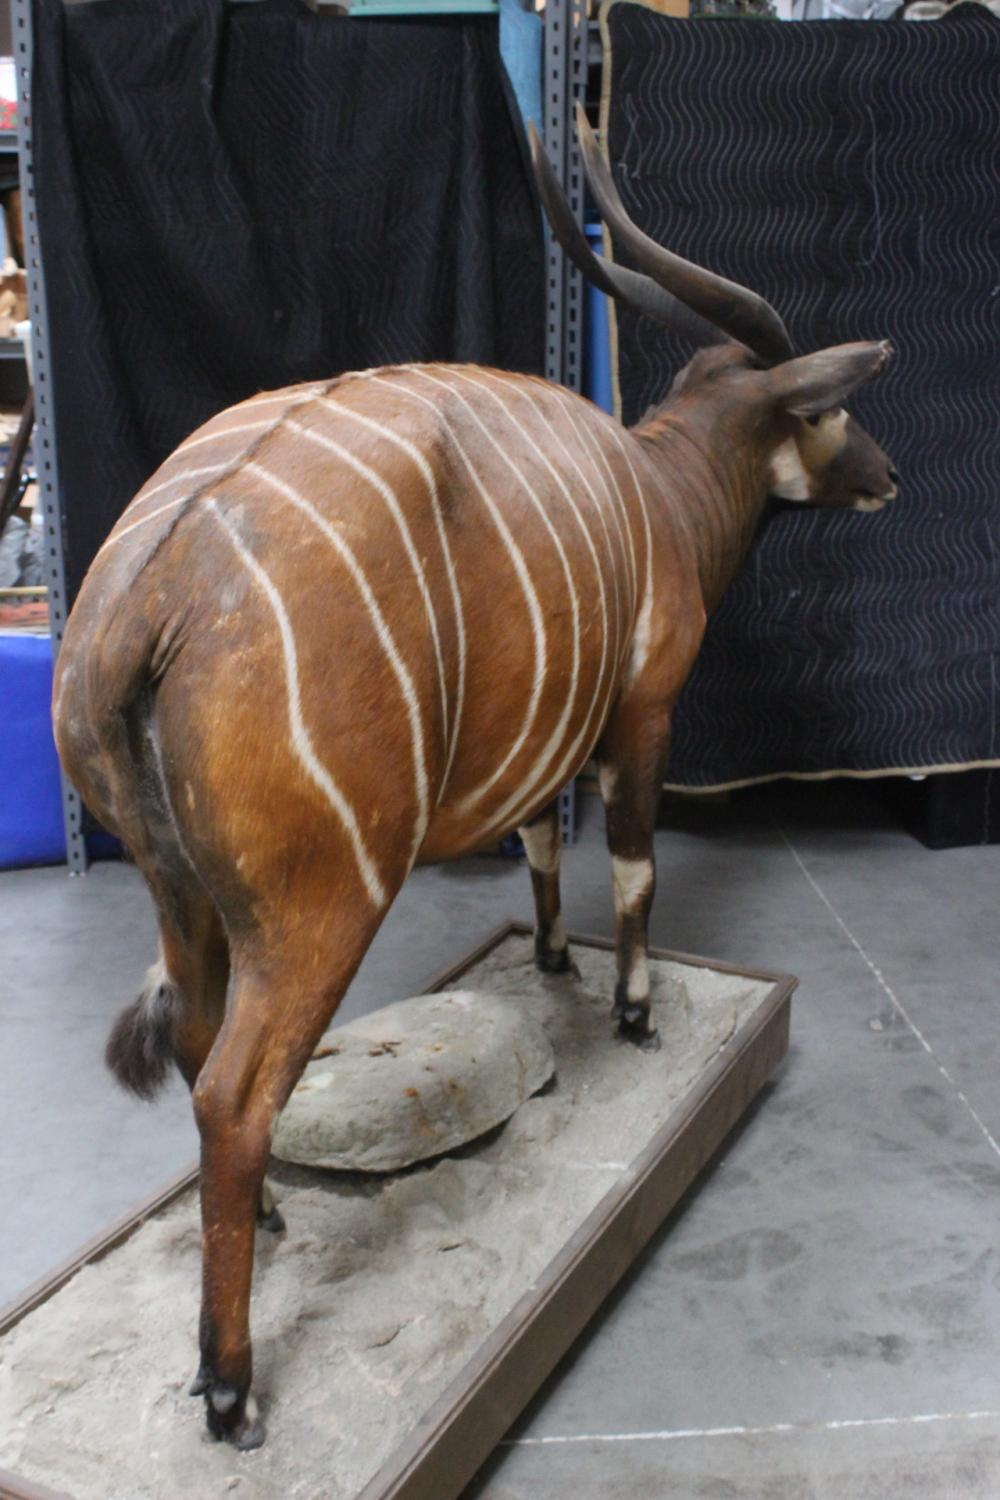 Lot 143: An extremely rare full body taxidermy of bongo